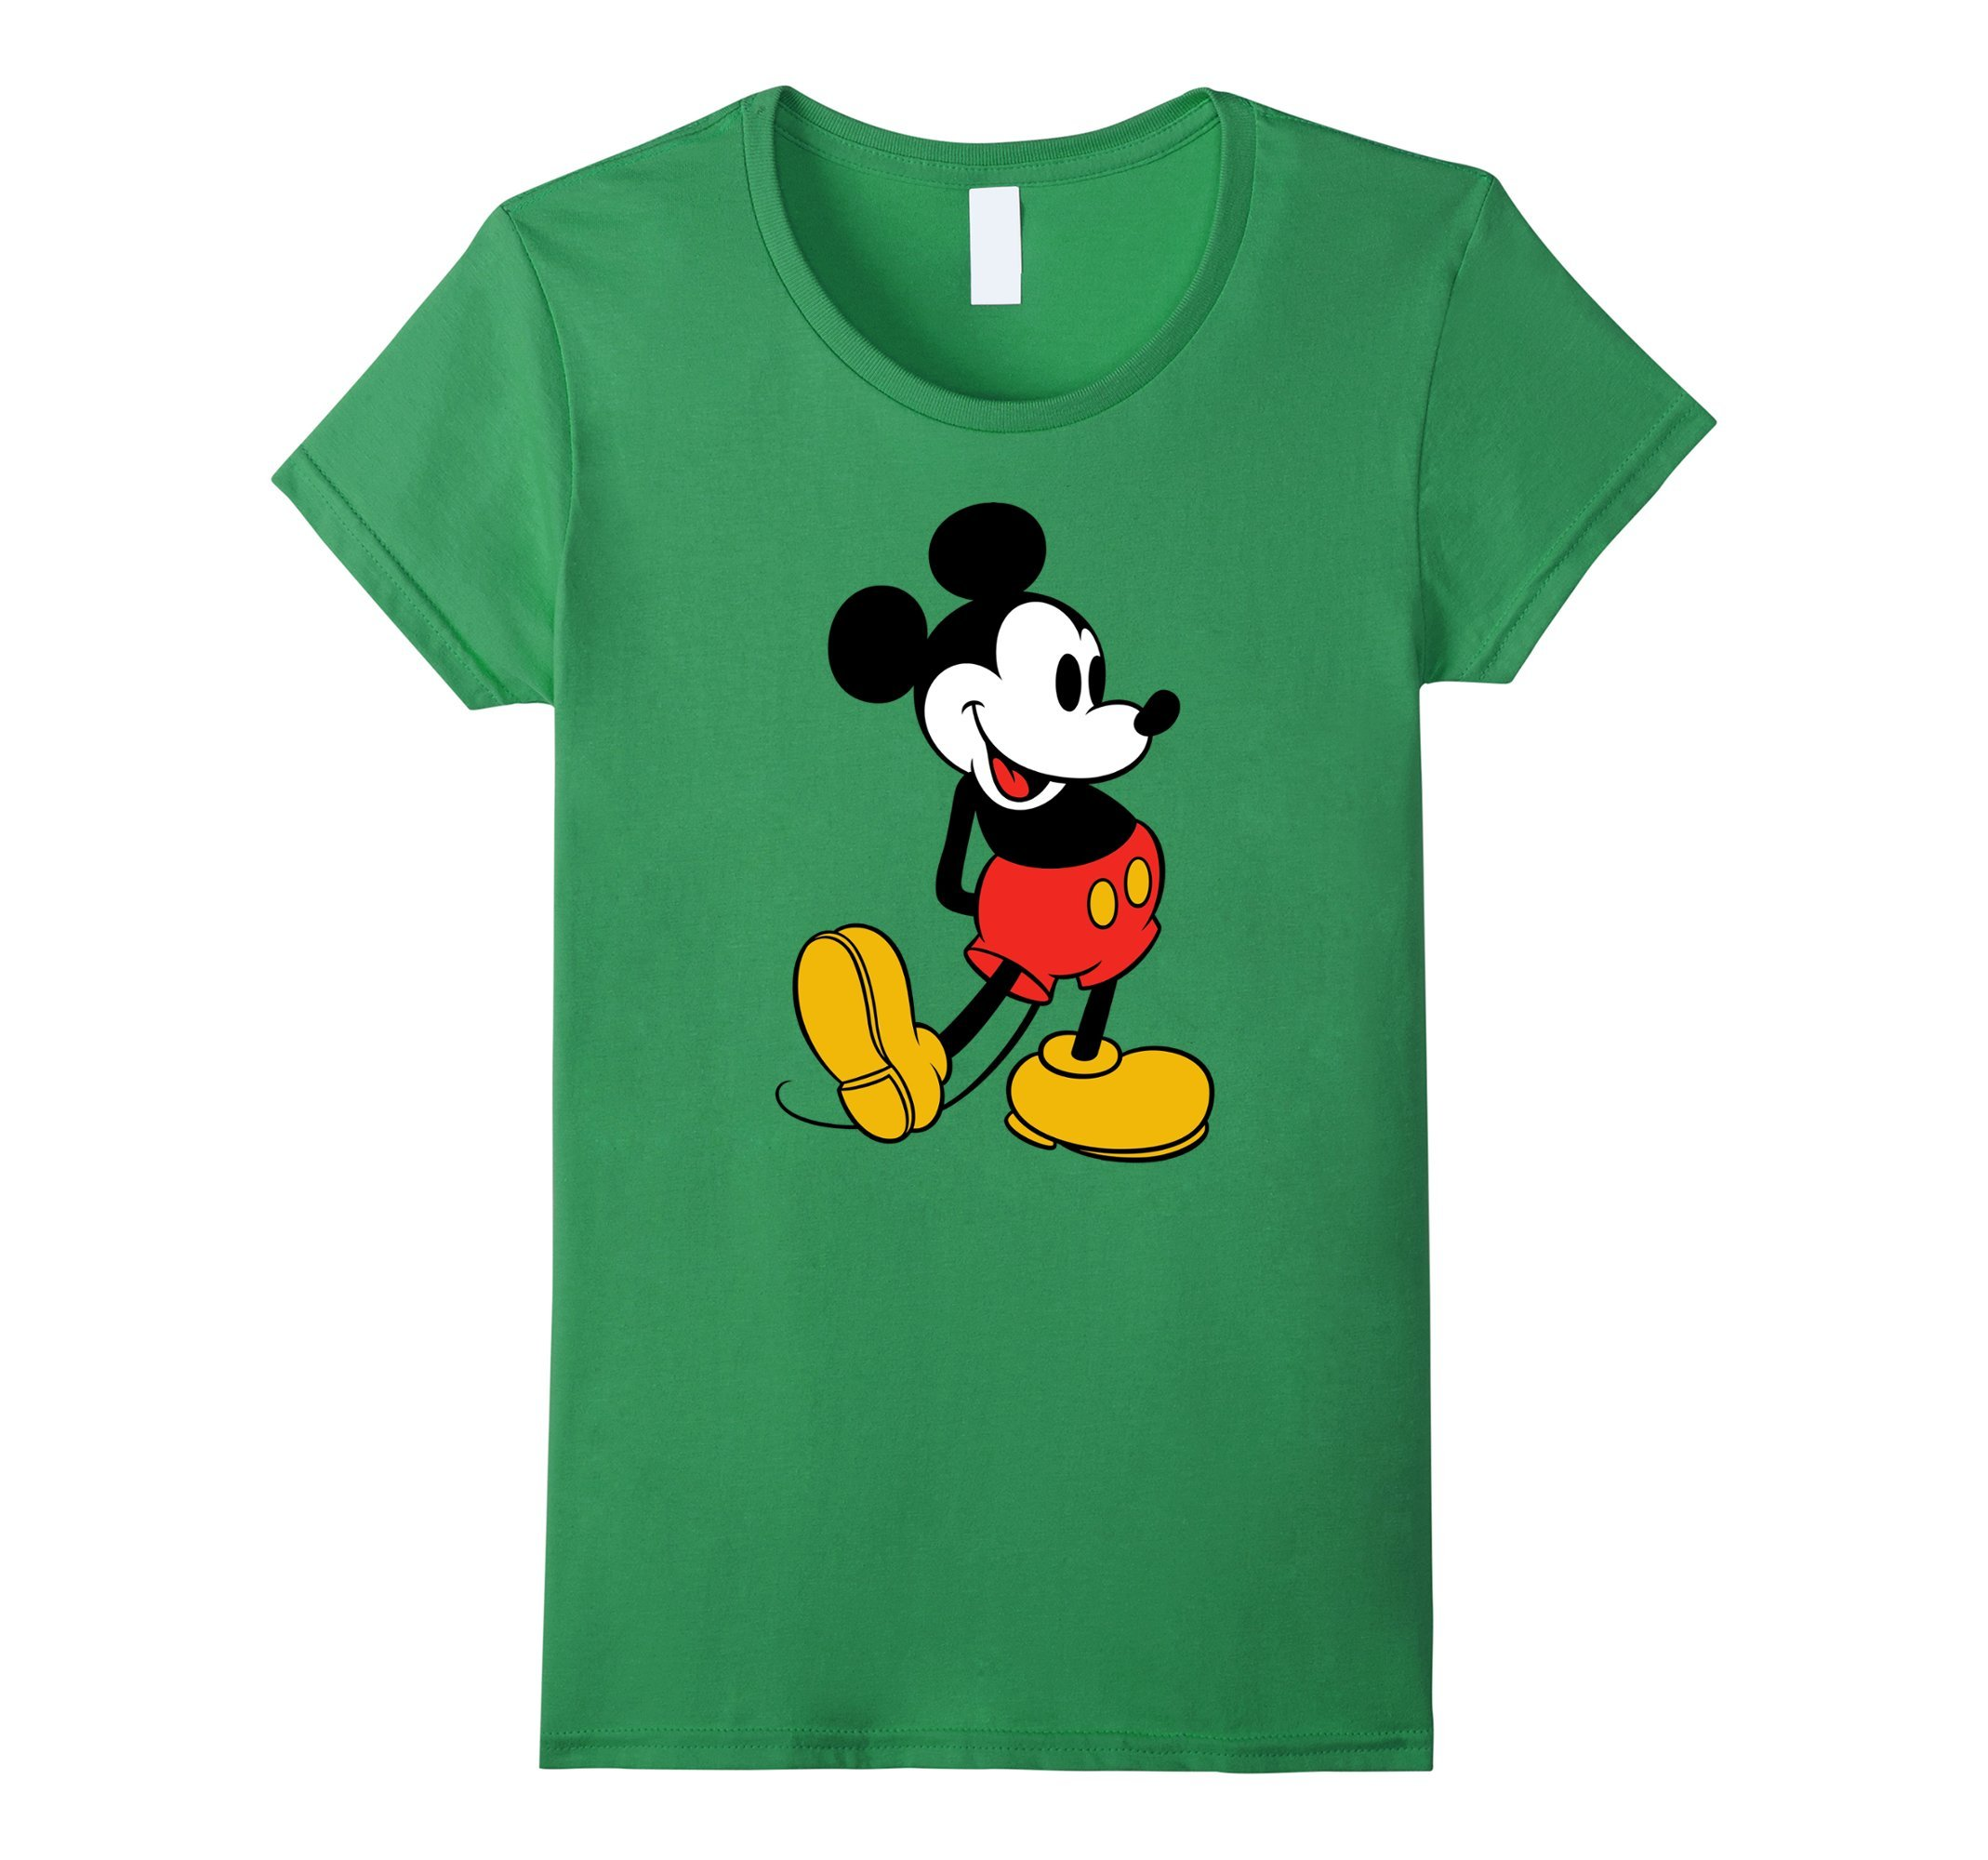 Womens Disney Classic Mickey Mouse T-Shirt Small Grass